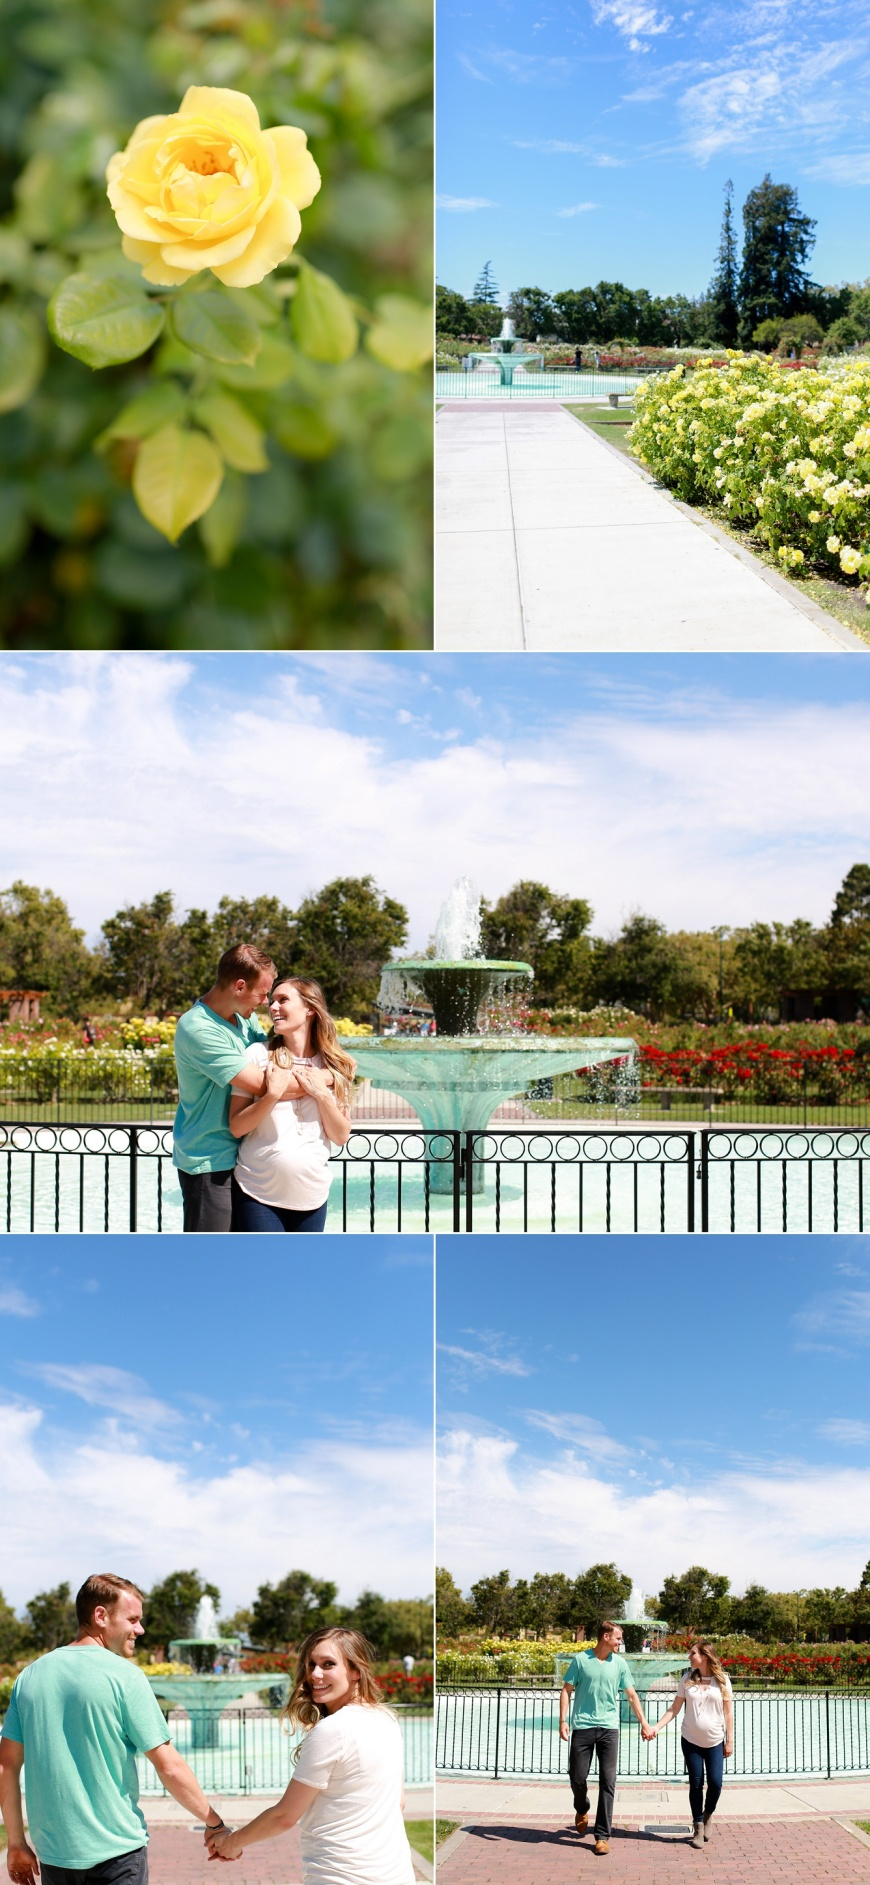 San-Jose-Rose-Garden-Maternity-Photographer_1013.jpg